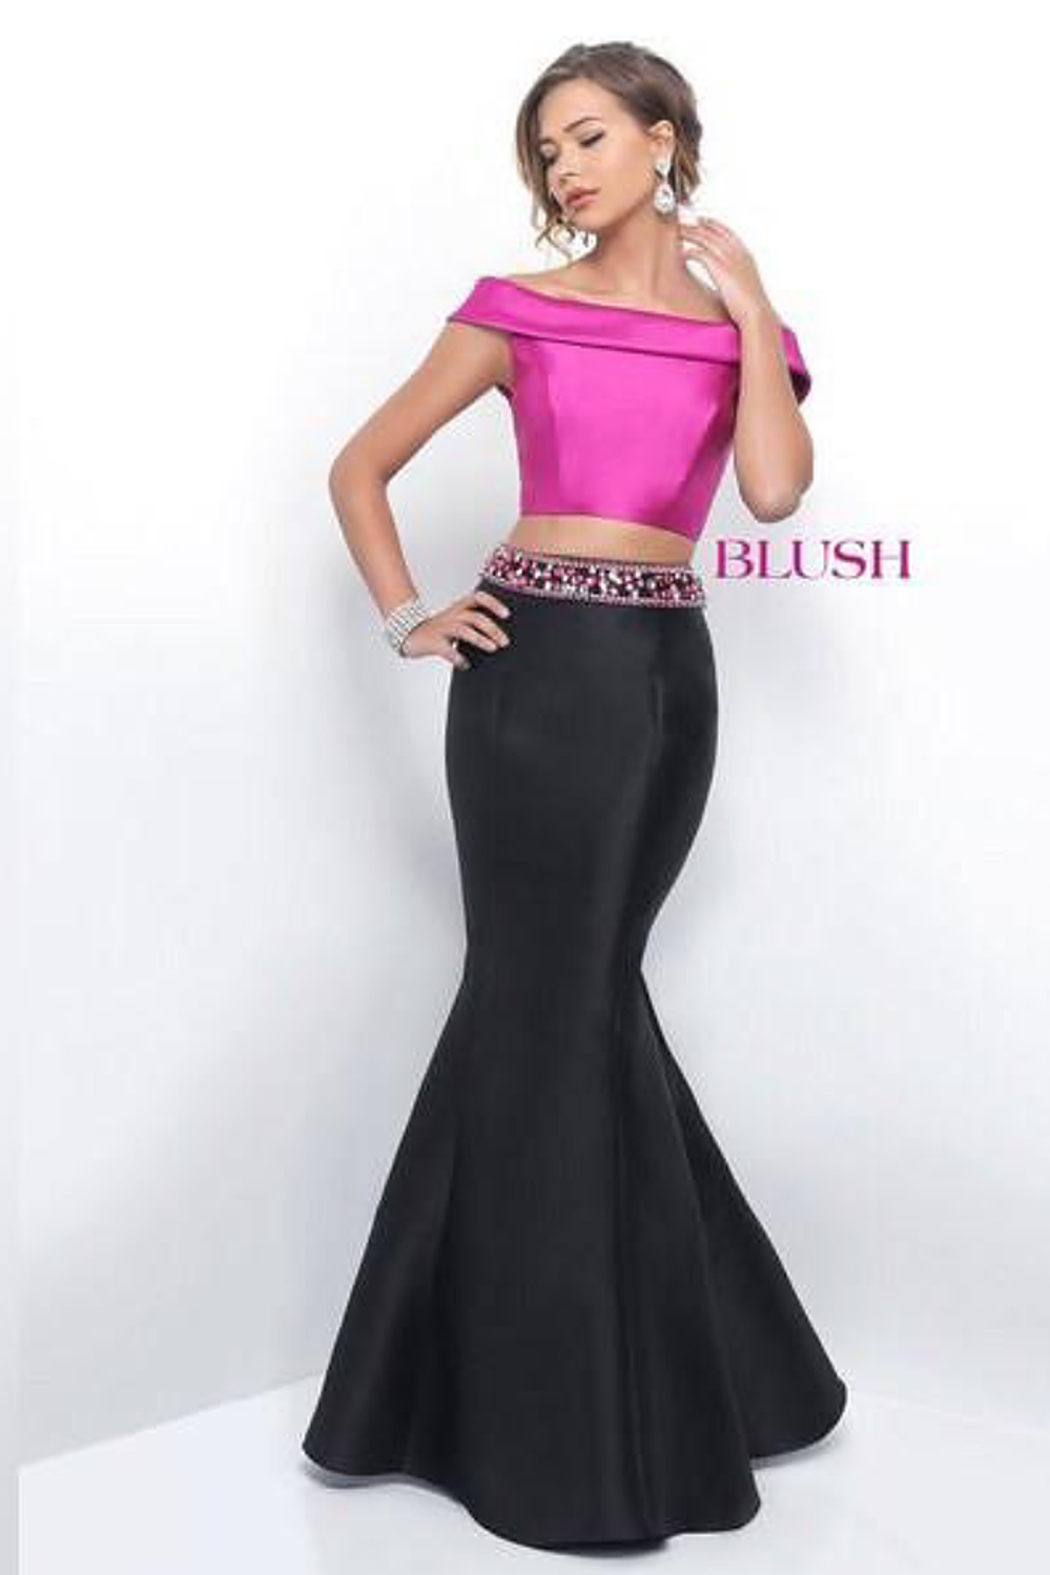 Blush Prom Gown with Black Satin Trumpet Skirt - Main Image